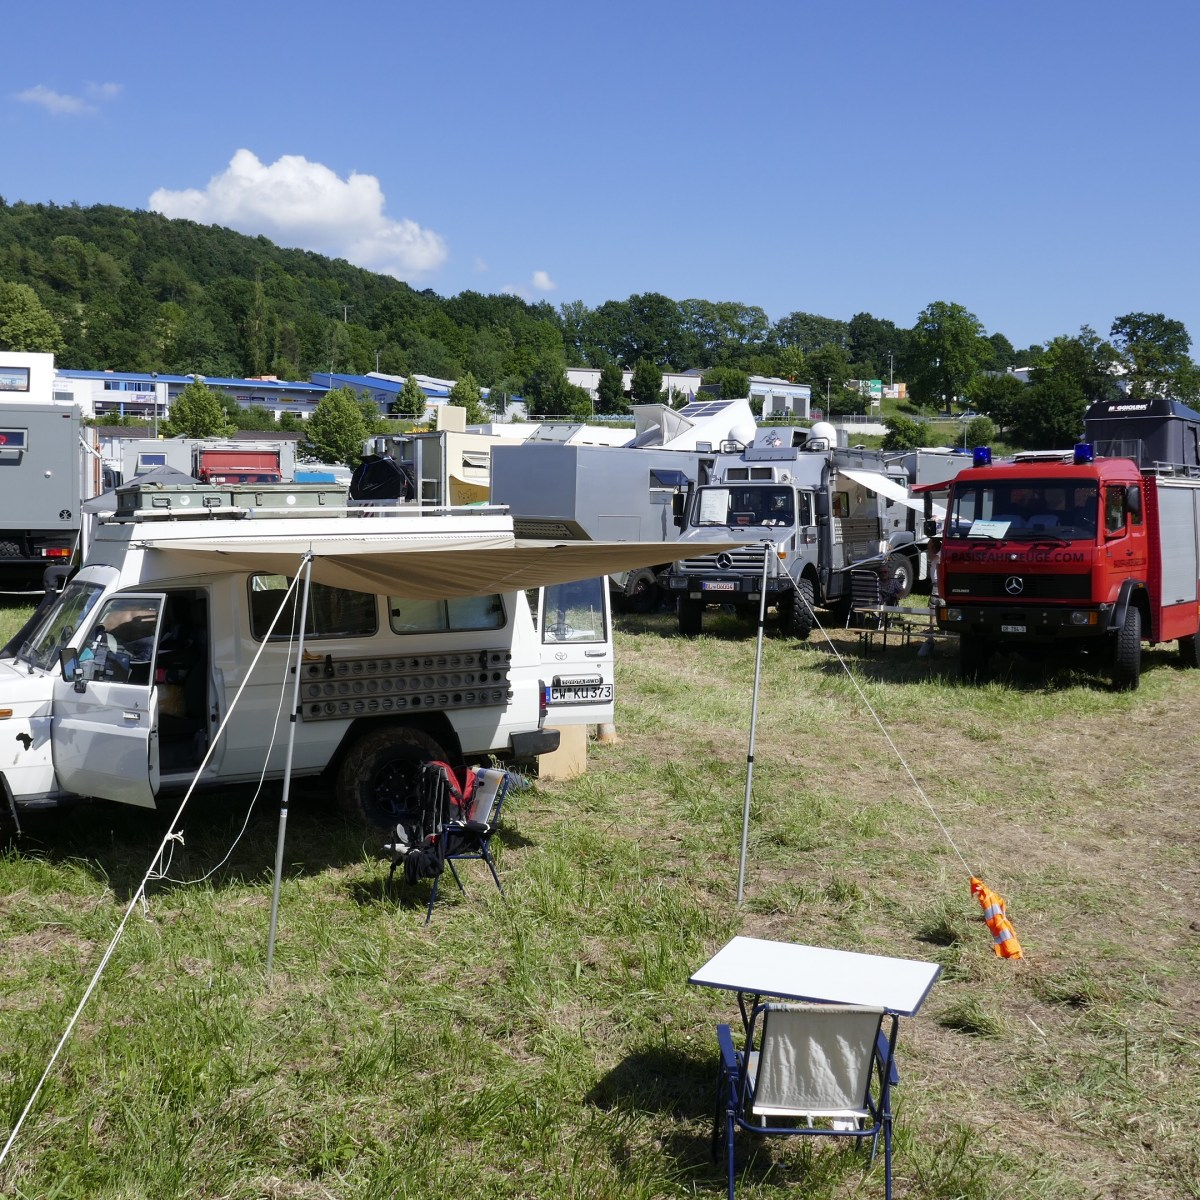 The Abenteuer and Allrad Show